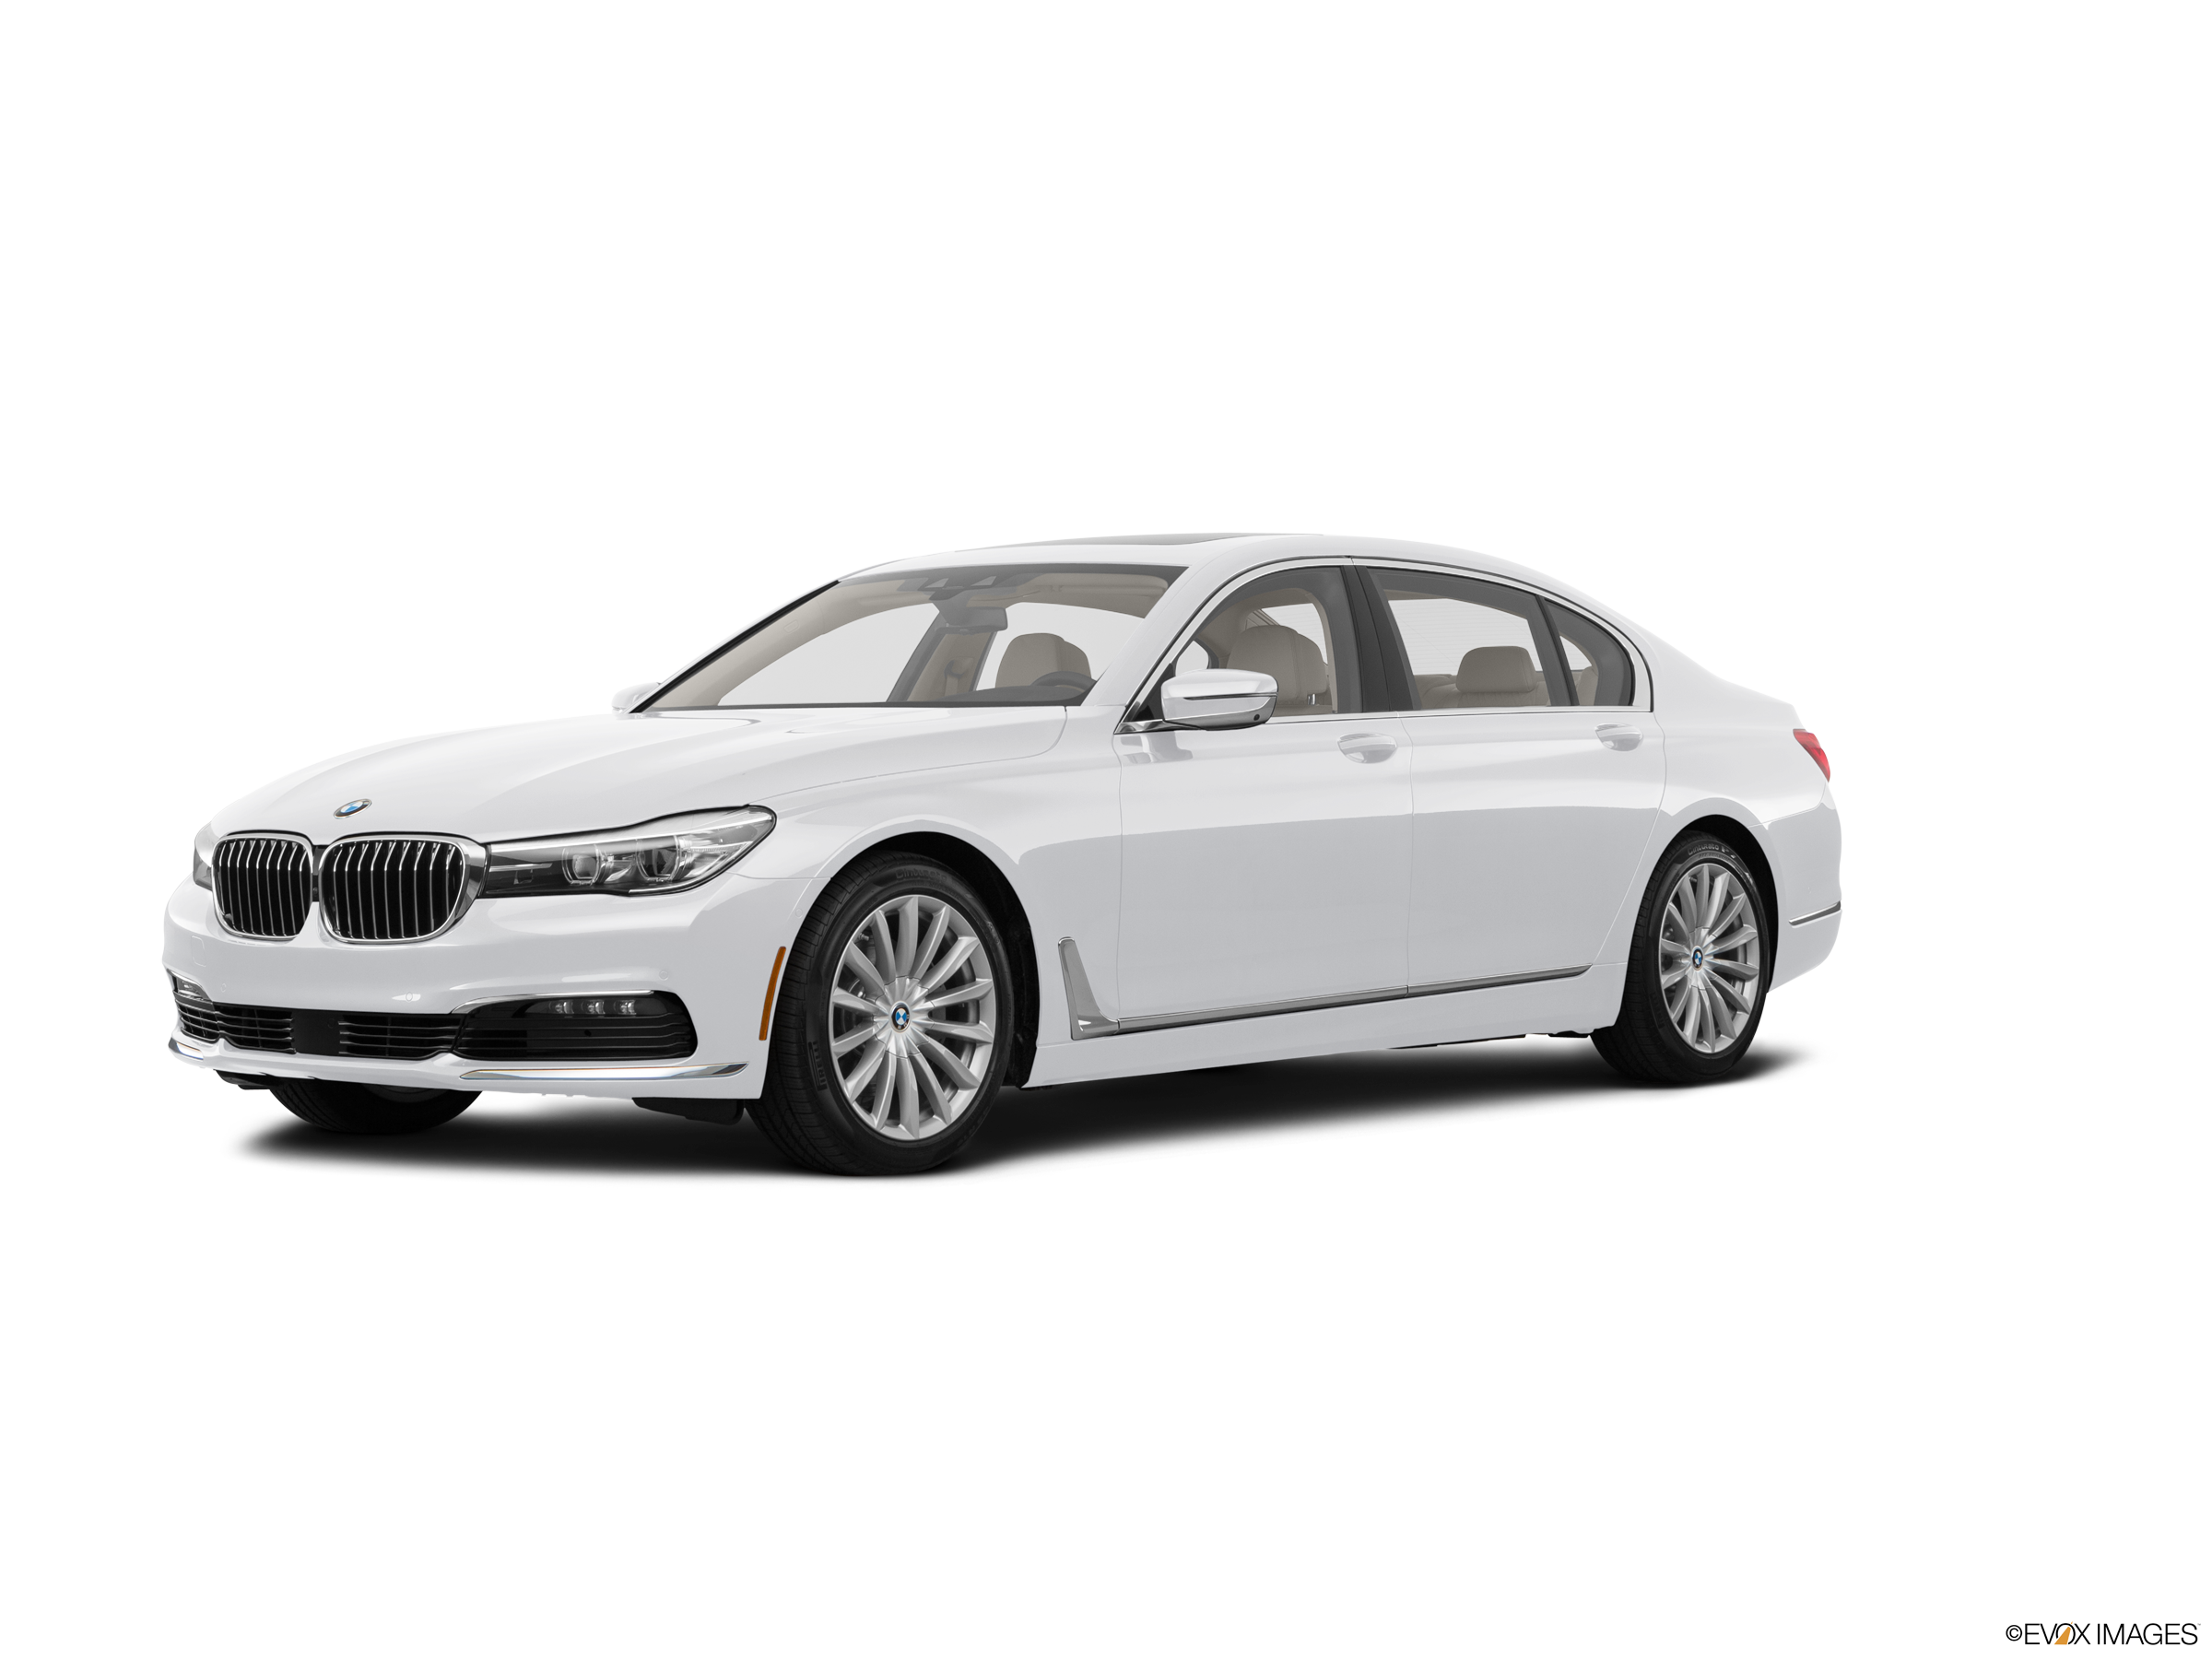 2017 Bmw 7 Series Values Cars For Sale Kelley Blue Book